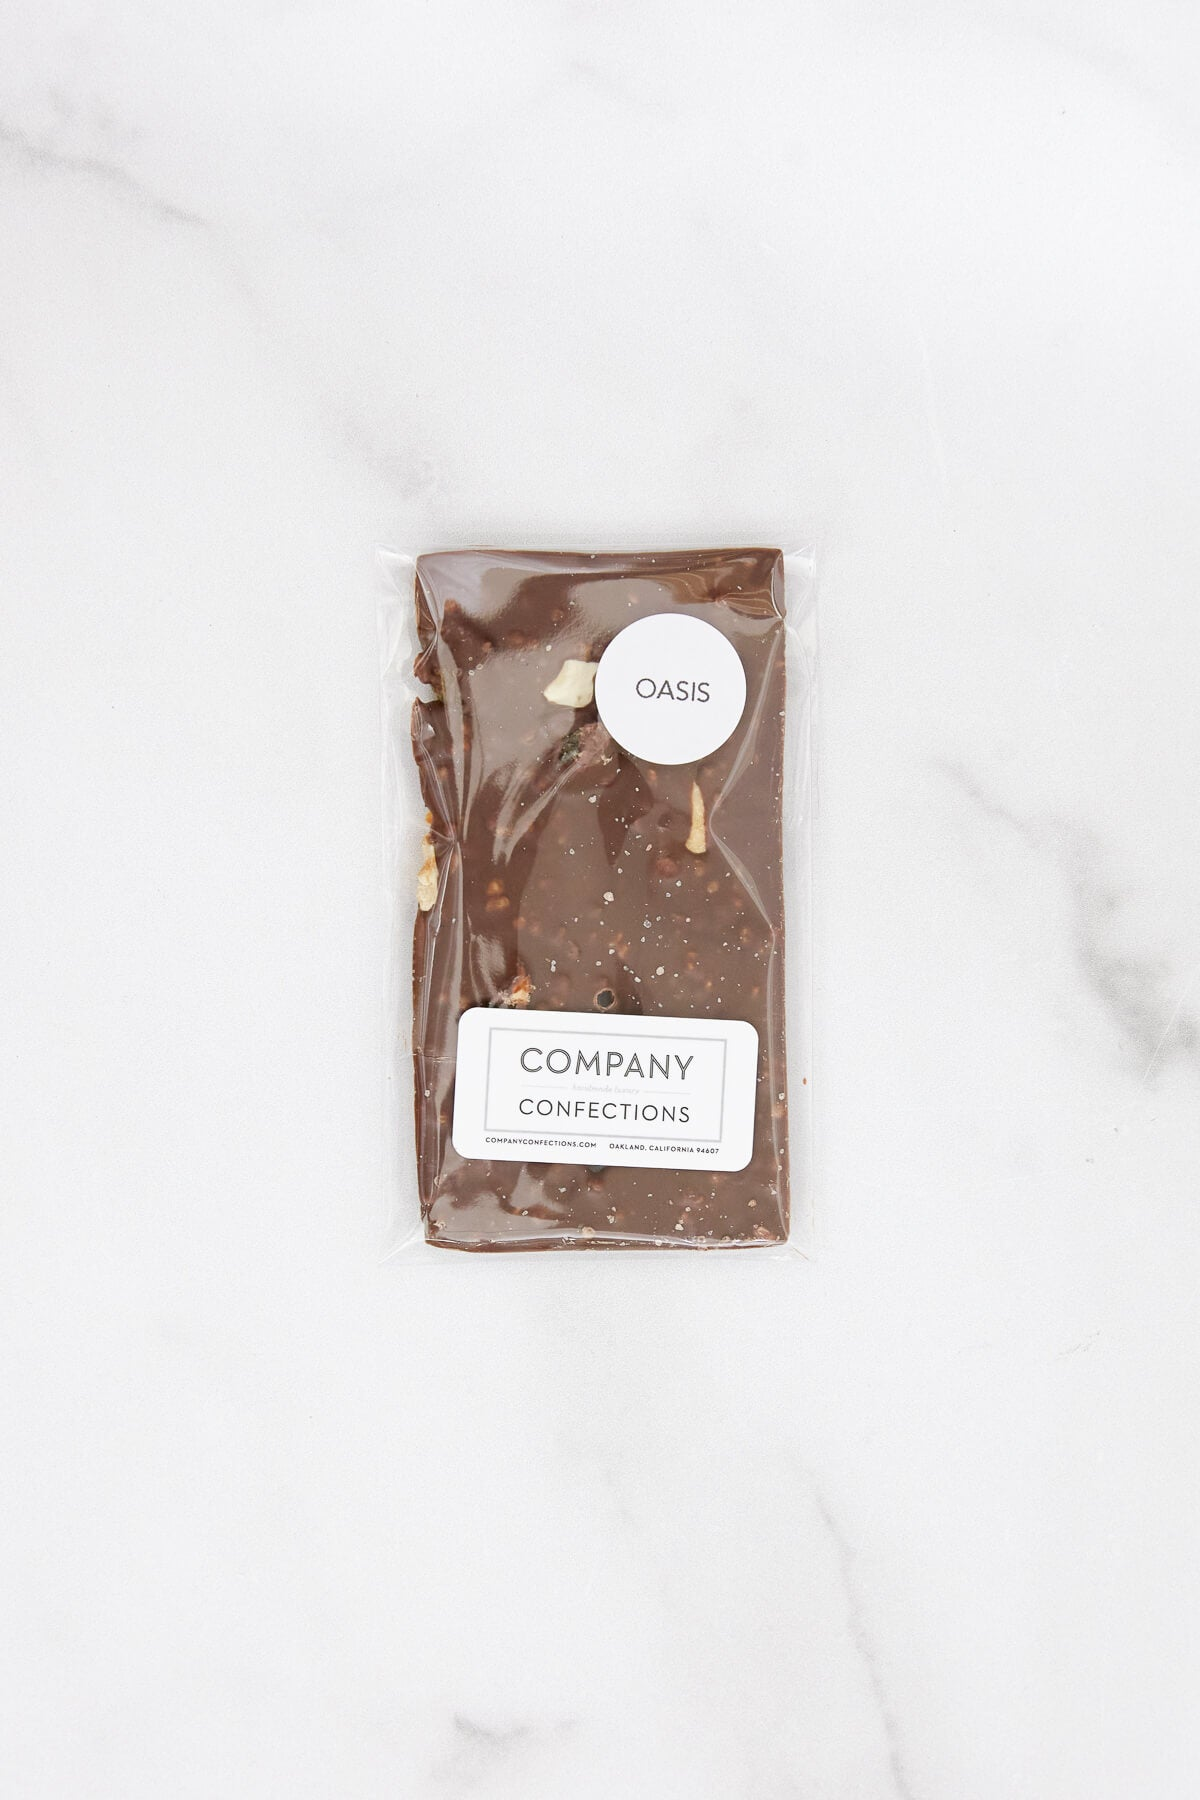 Company Confections Oasis Chocolate Bar